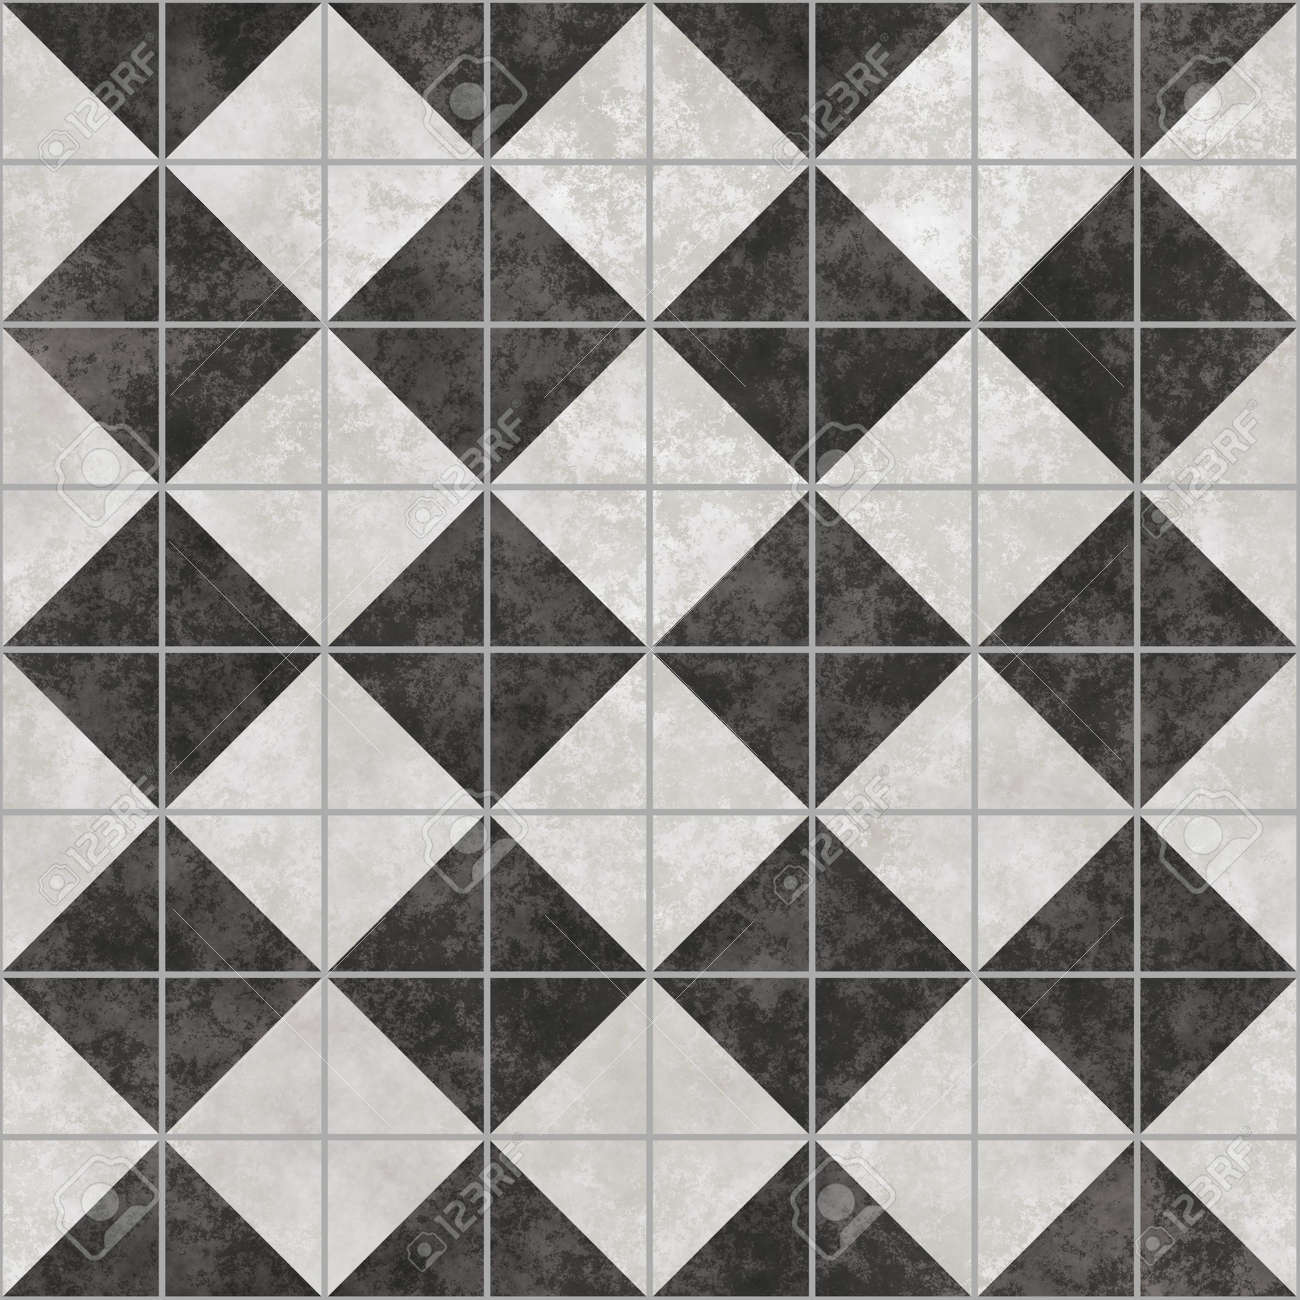 Black And White Tiles That Tile Seamless In All Directions Stock ...